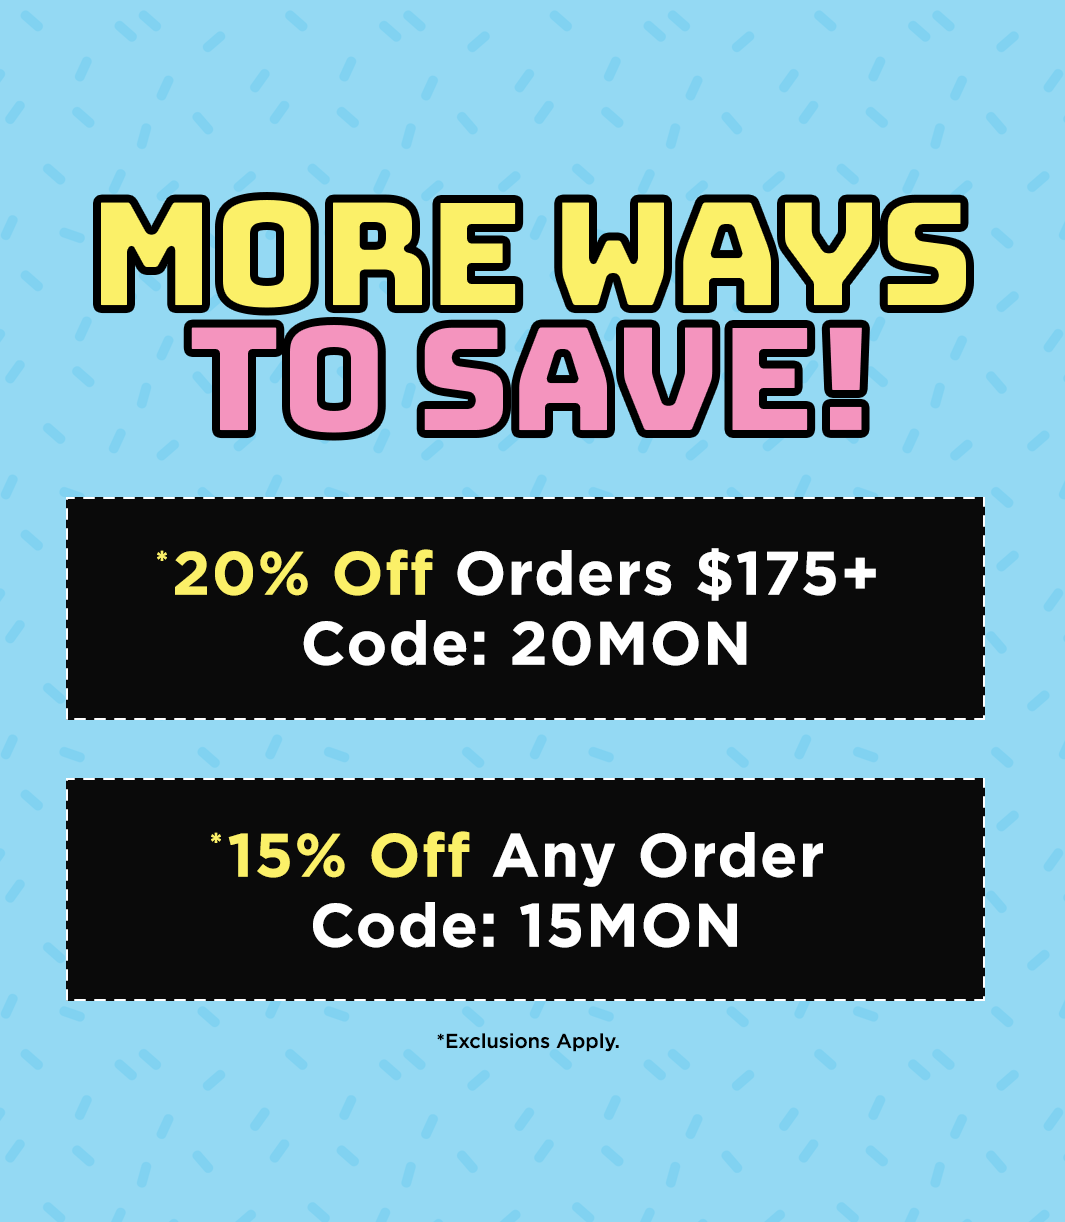 Take 20% Off Orders $175+, code 20MON. Exclusions apply.